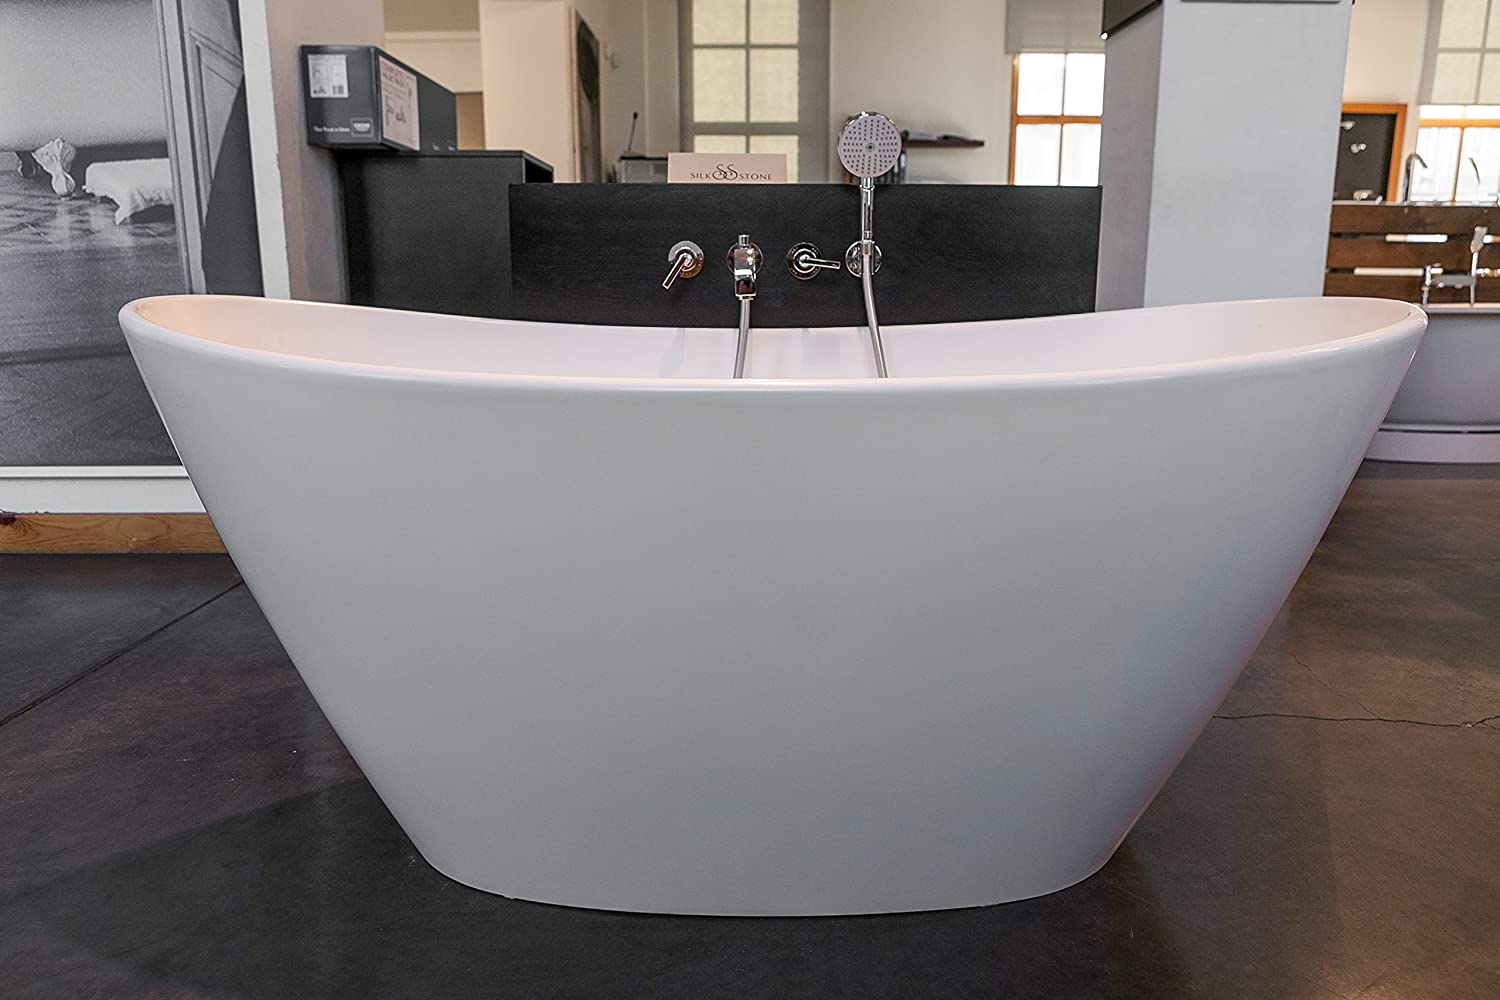 Aquatica PureScape 748M Matte Freestanding Solid Surface Bathtub      Amazon.com